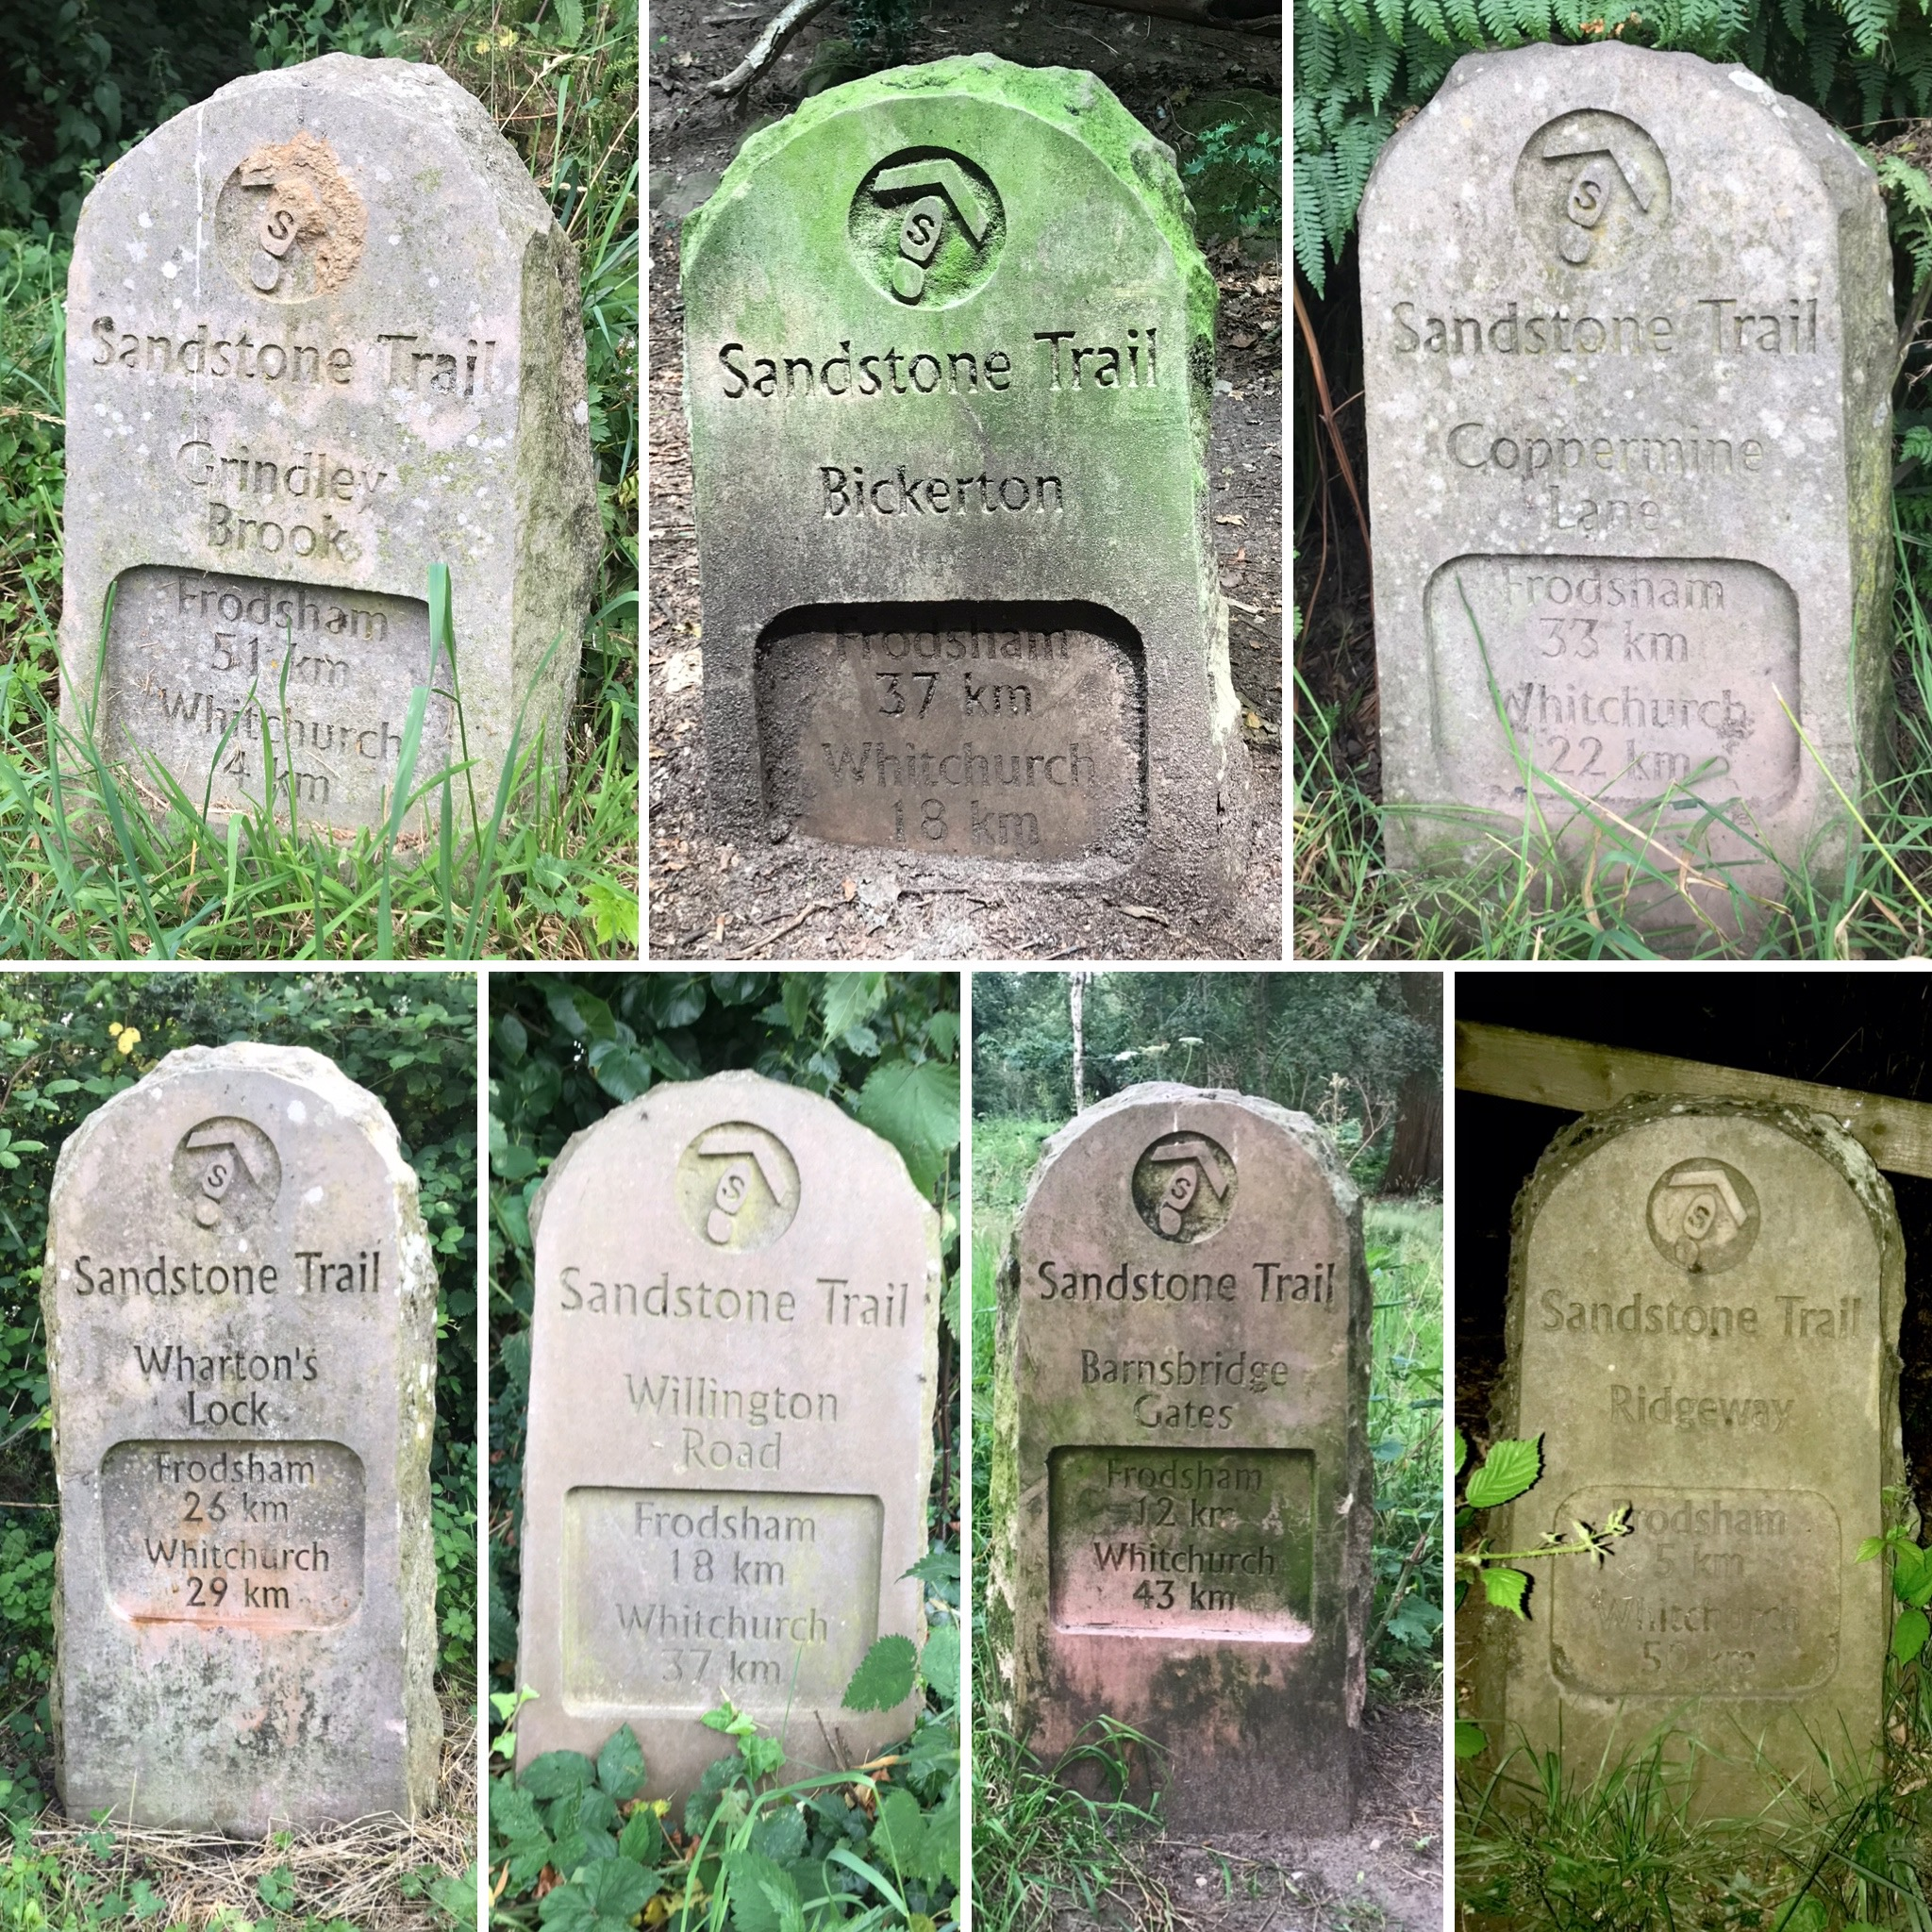 seven stone way marks for the Sandstone Trail, marking the changing distances to Frodsham and Whitchurch